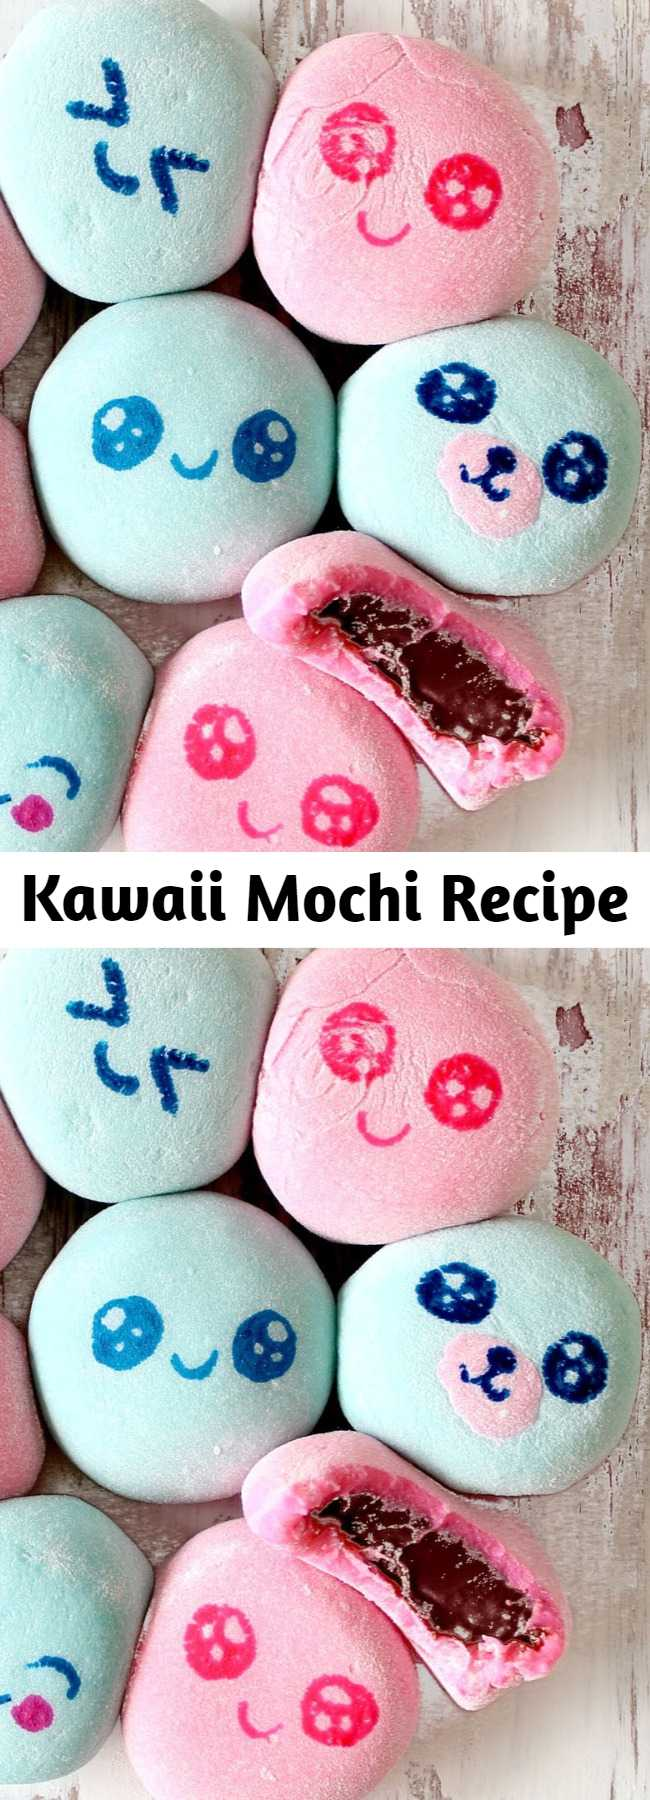 Kawaii Mochi Recipe